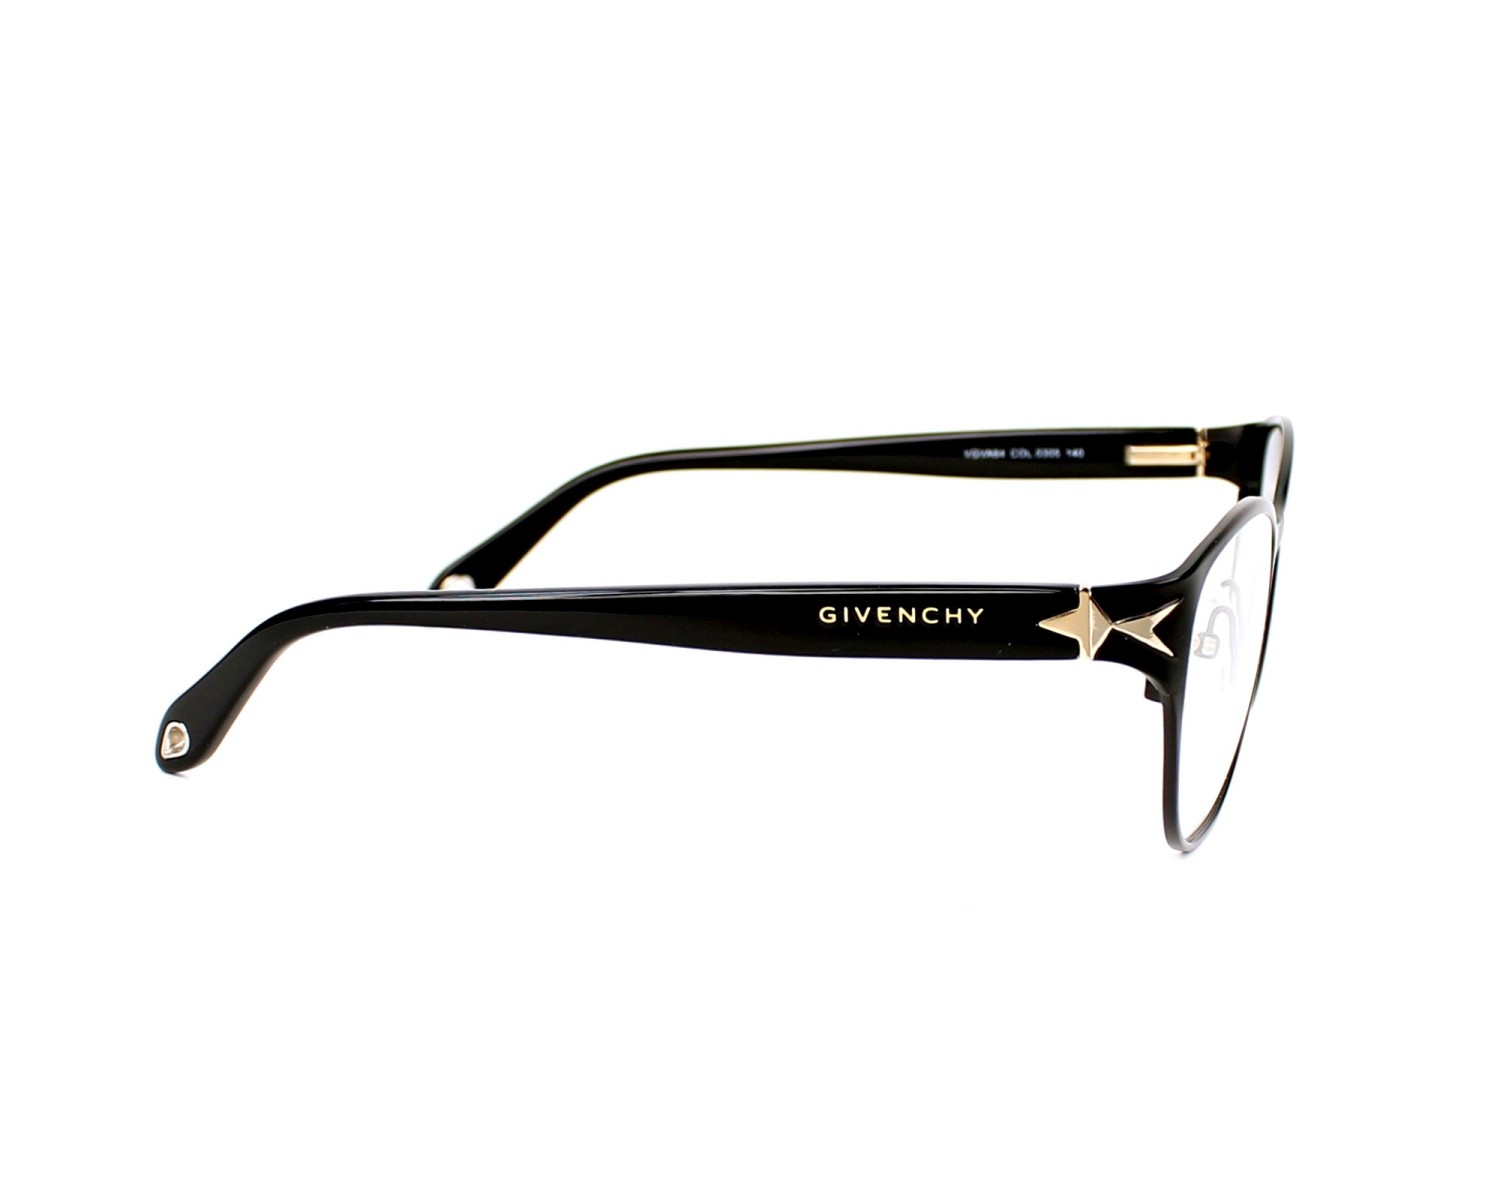 Givenchy Glasses Vgva 64